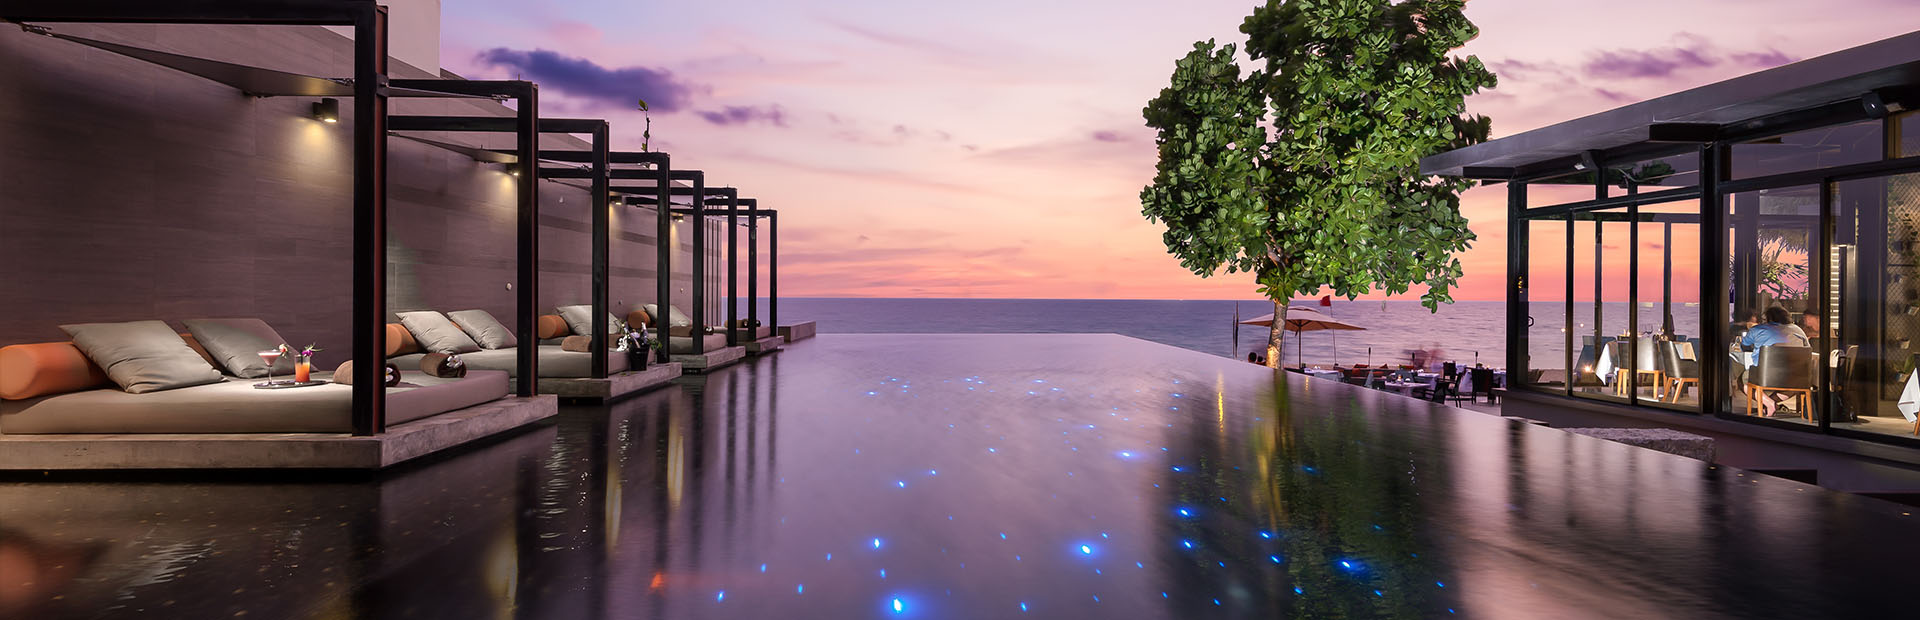 Aleenta resorts spas luxury hotel beach resorts for Small luxury spa hotels